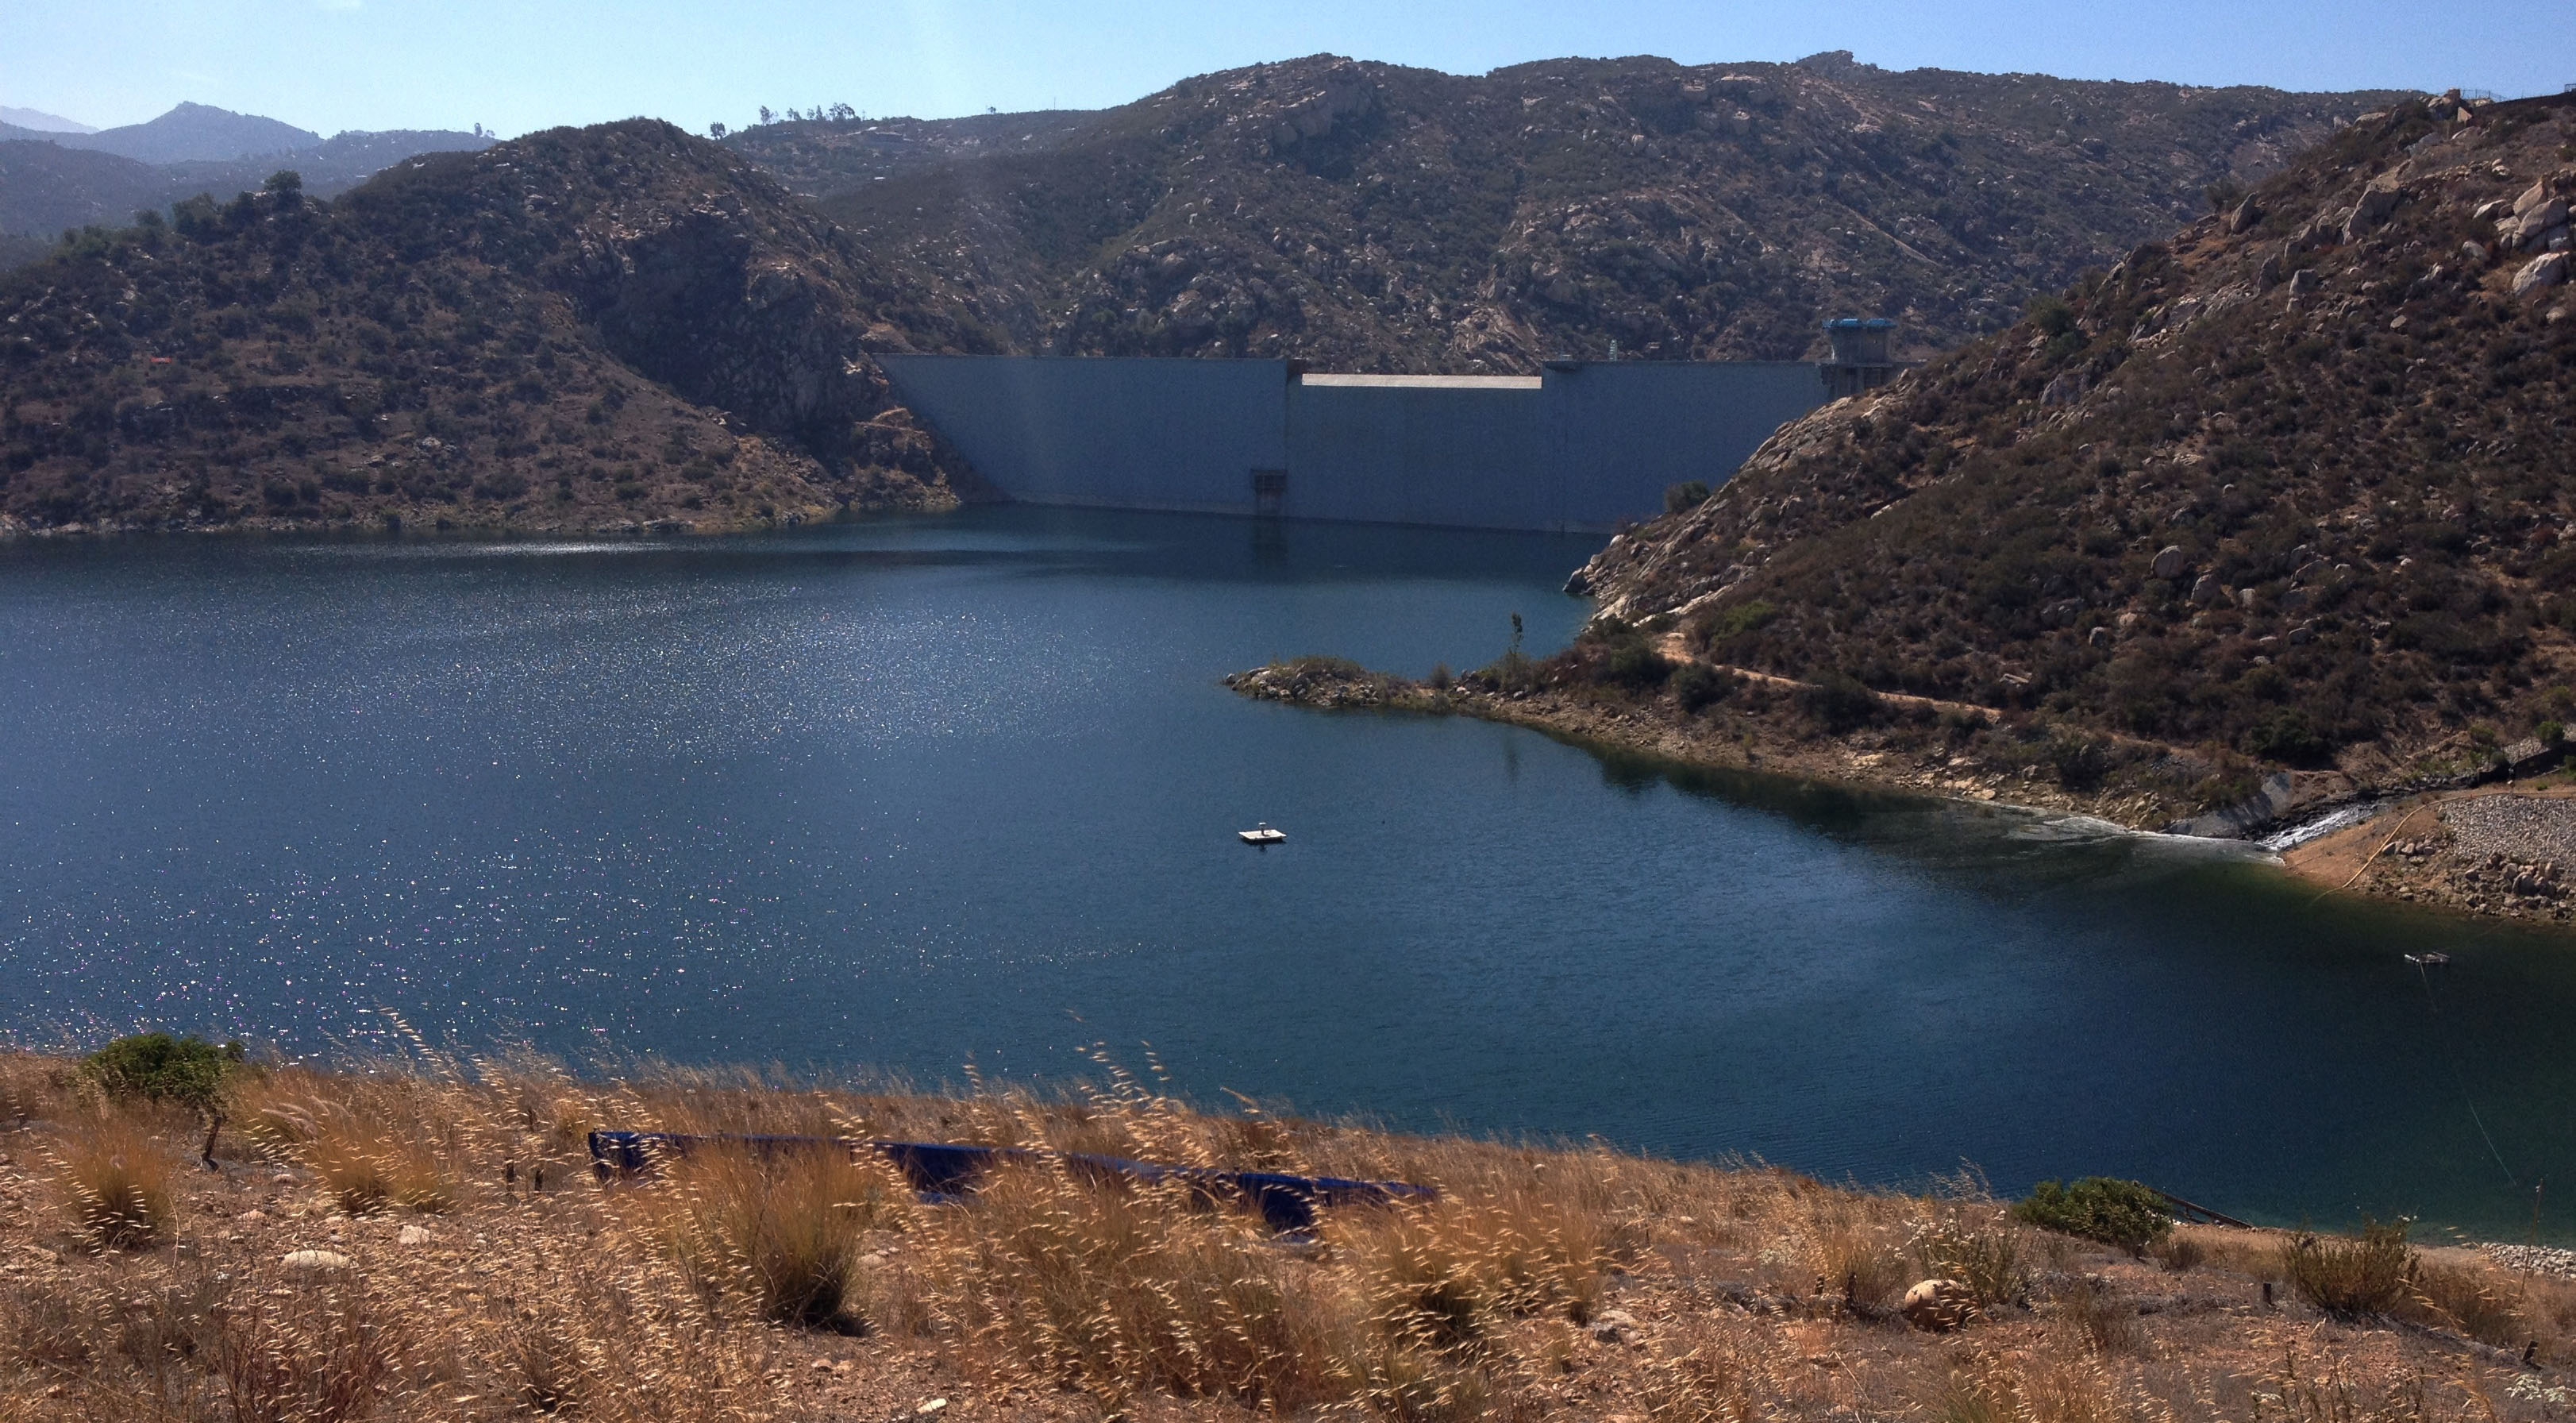 How Does California's 'Zero Water Allocation' Affect San Diego? | KPBS